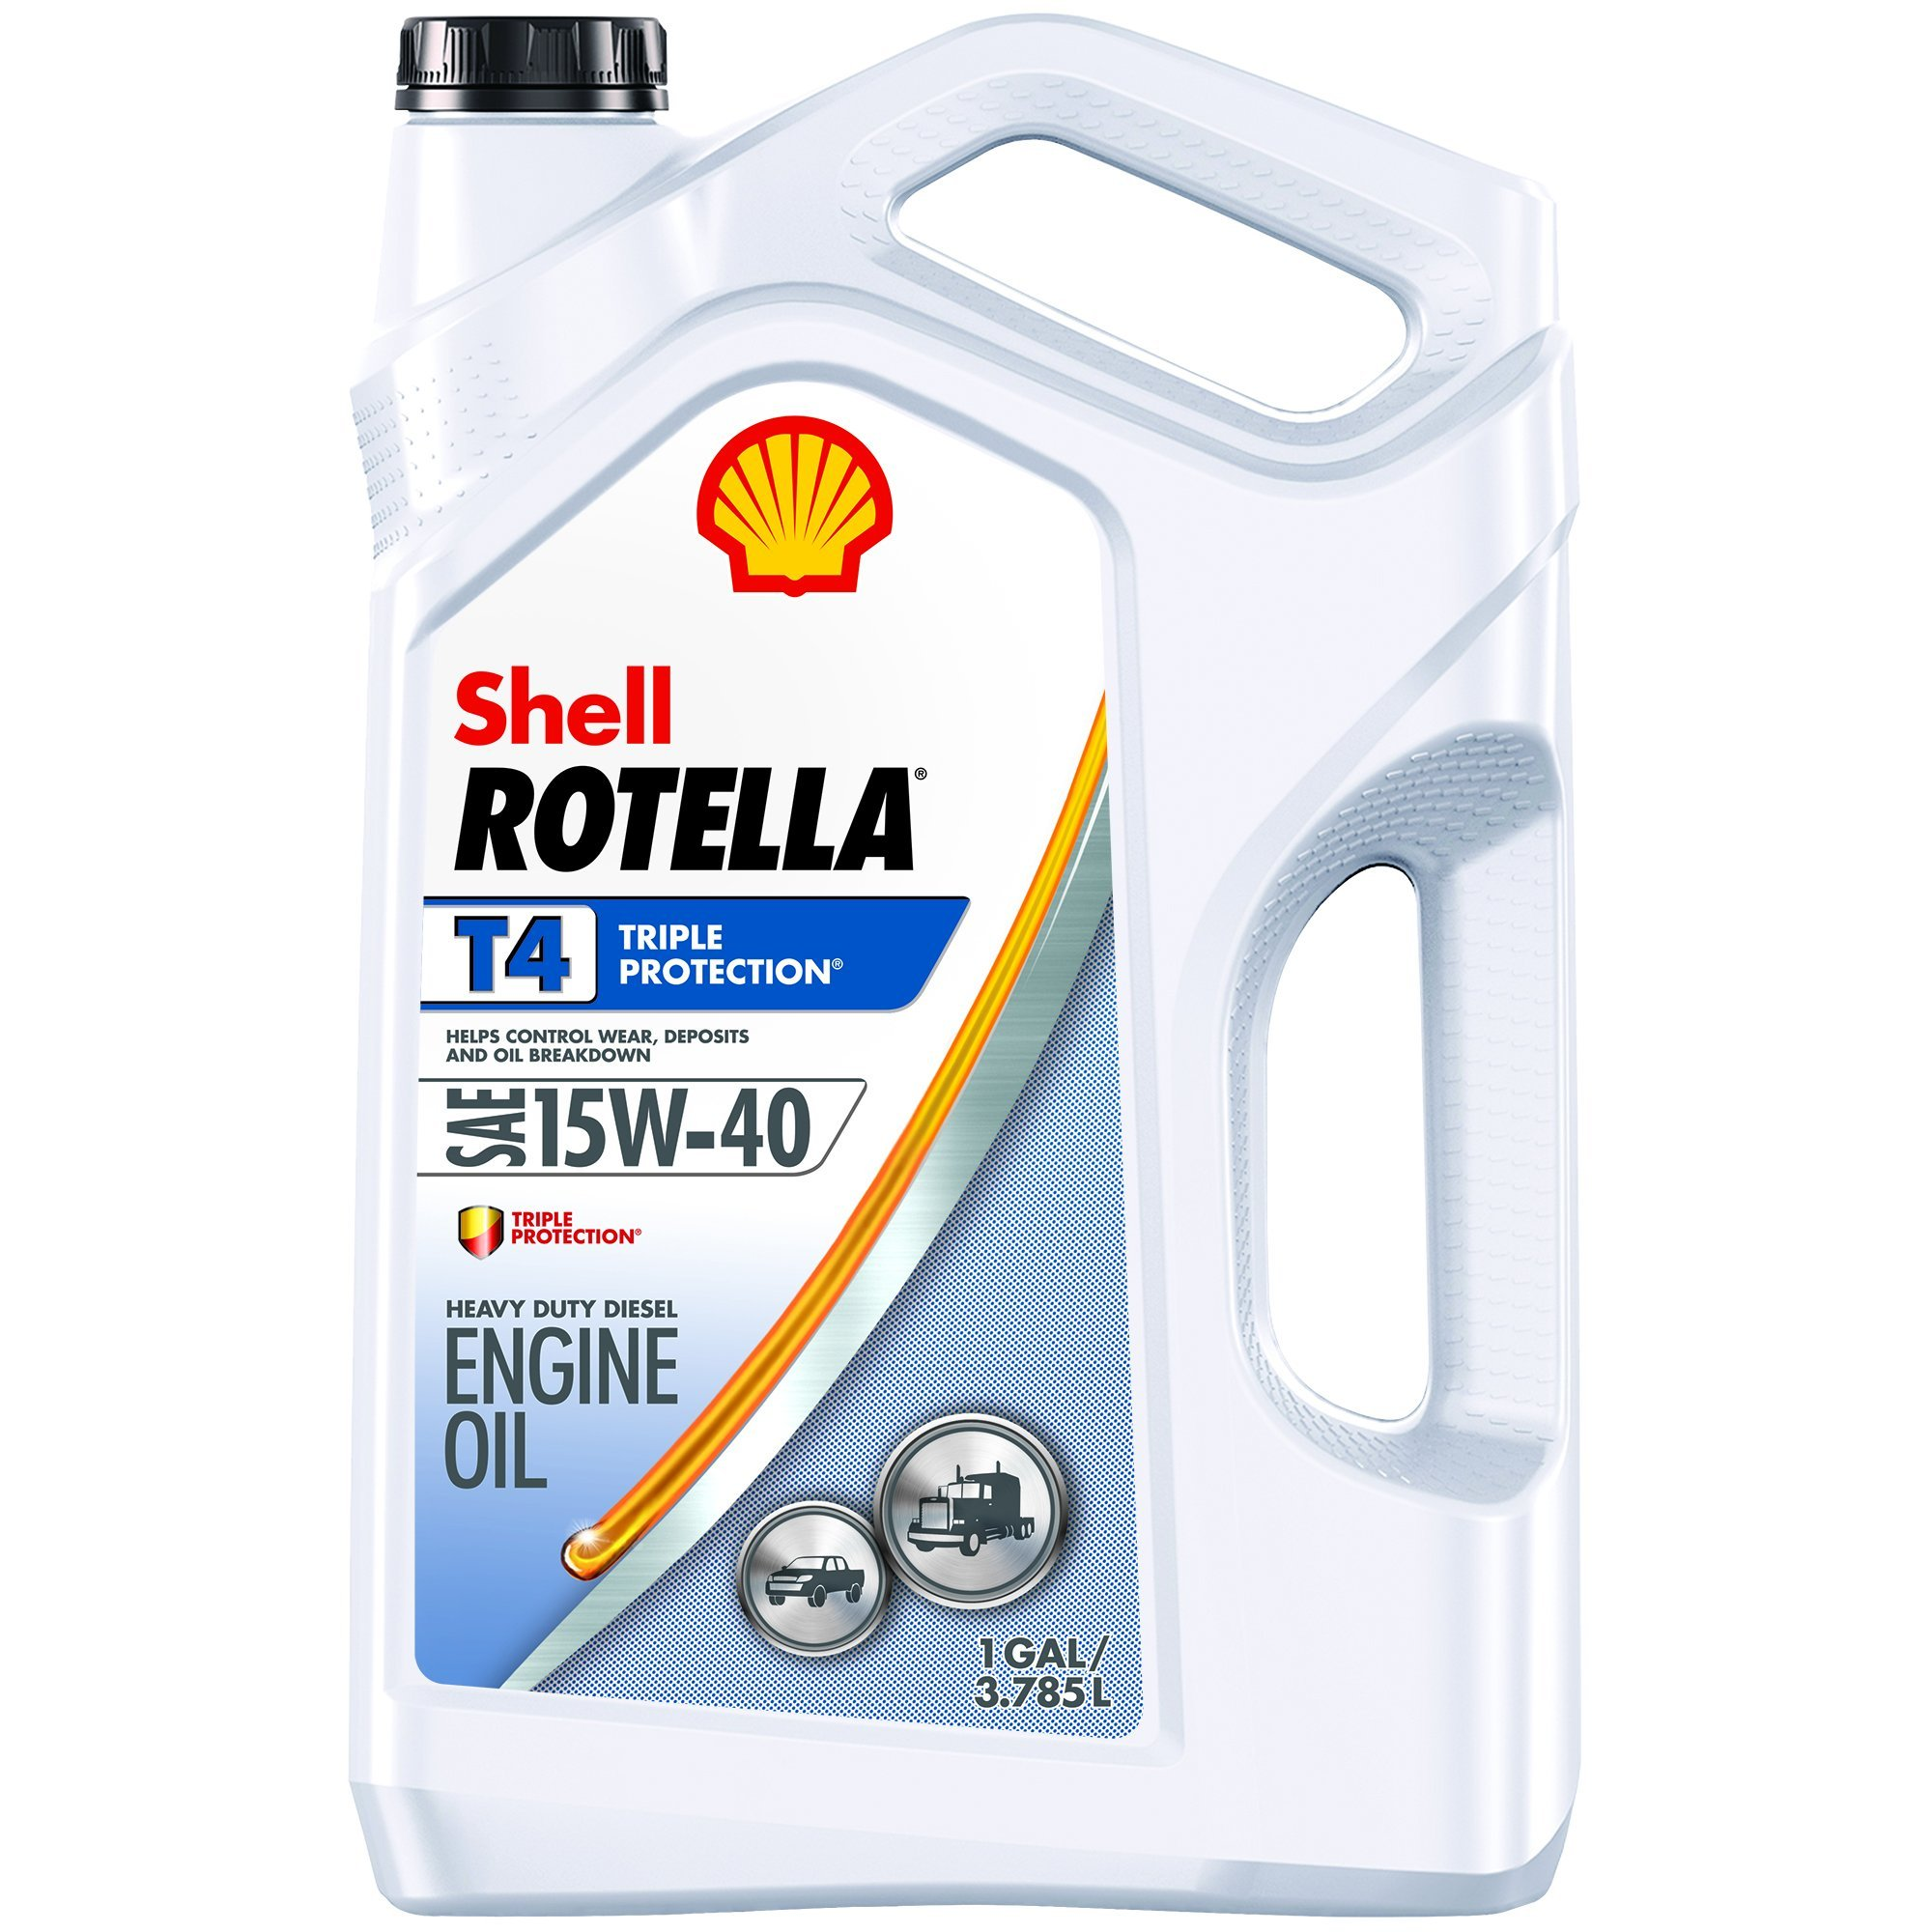 Shell ROTELLA T4 Triple Protection 15W-40 Diesel Oil, Heavy Duty Engine Oil (Formerly Shell ROTELLA T), 1 Gallon by Shell Rotella T